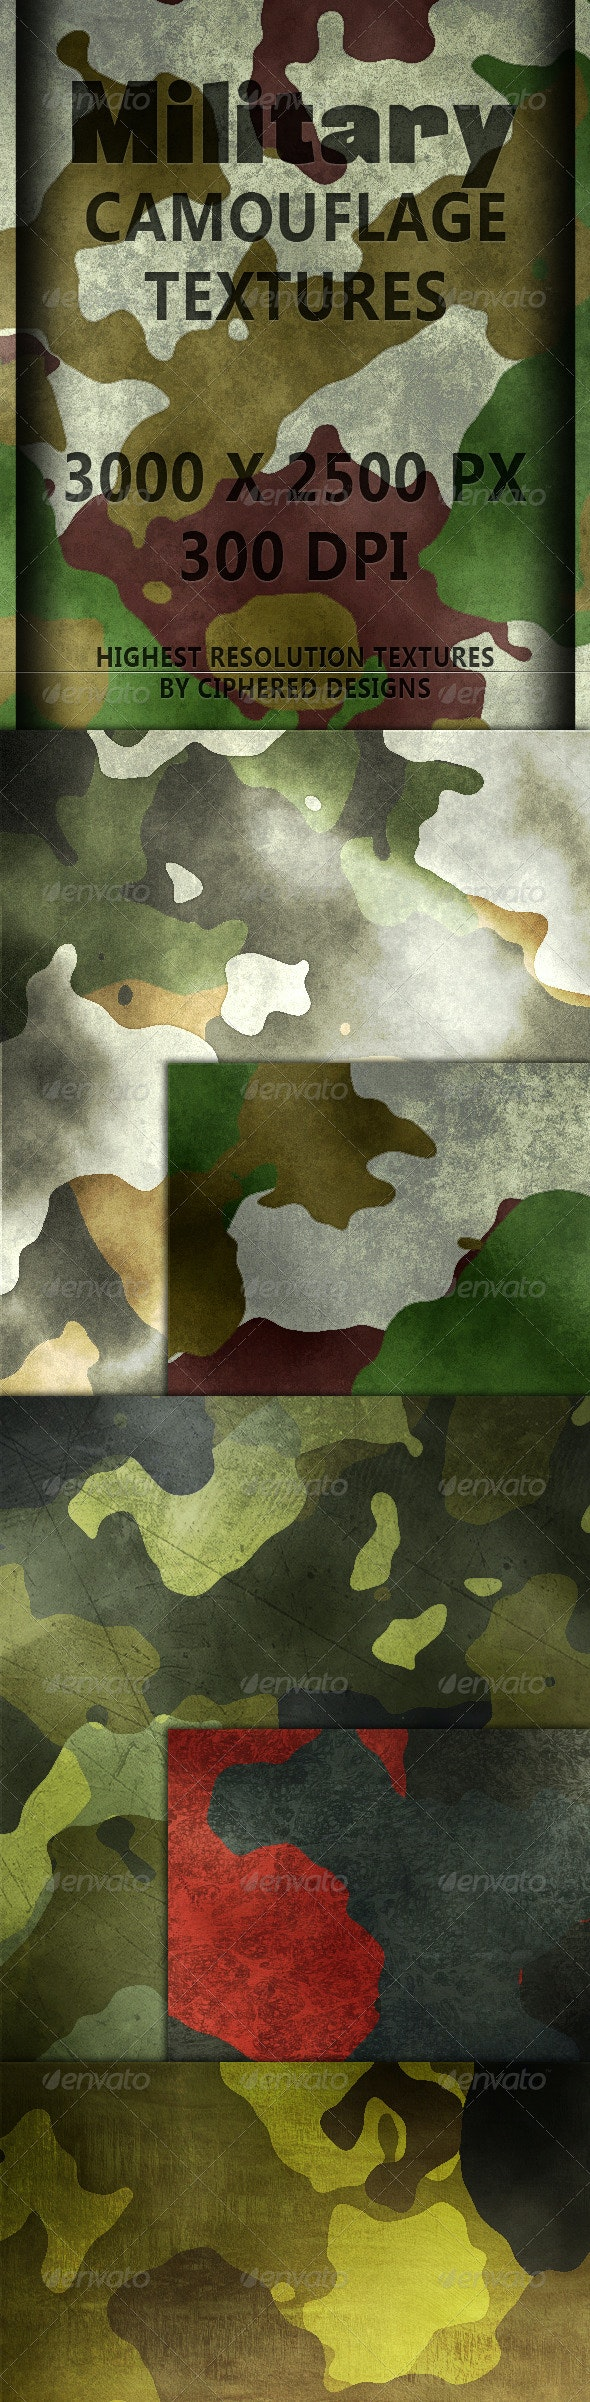 Military Camouflage Textures - Miscellaneous Textures